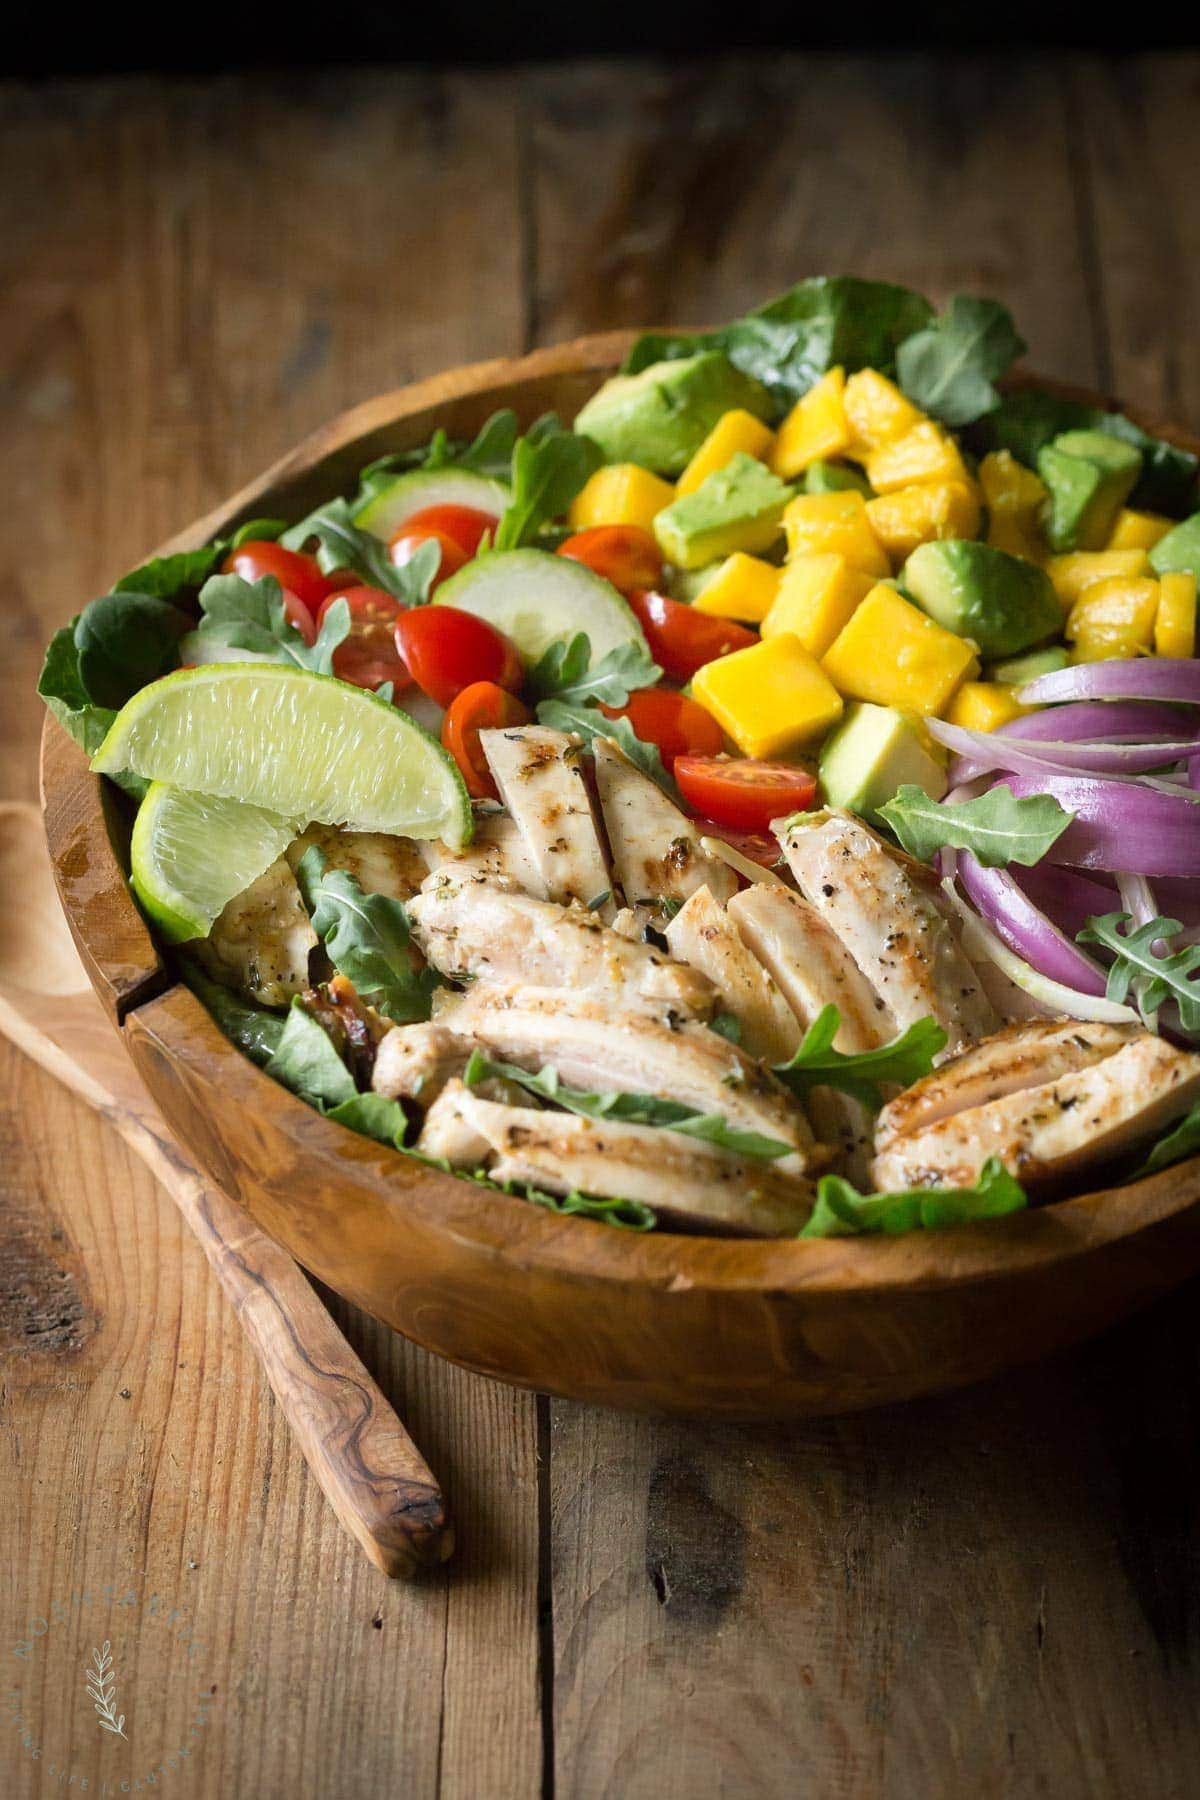 Chicken Avocado Salad with Honey Lime Dressing is such a fun summer salad! It's jam packed with healthy ingredients including arugula, spinach, and mango.| www.noshtastic.com | #chickensalad #chickenavocadosalad #glutenfreesalad #paleo #paleosalad #paleochicken #healthysalad #glutenfree #noshtastic #glutenfreerecipe